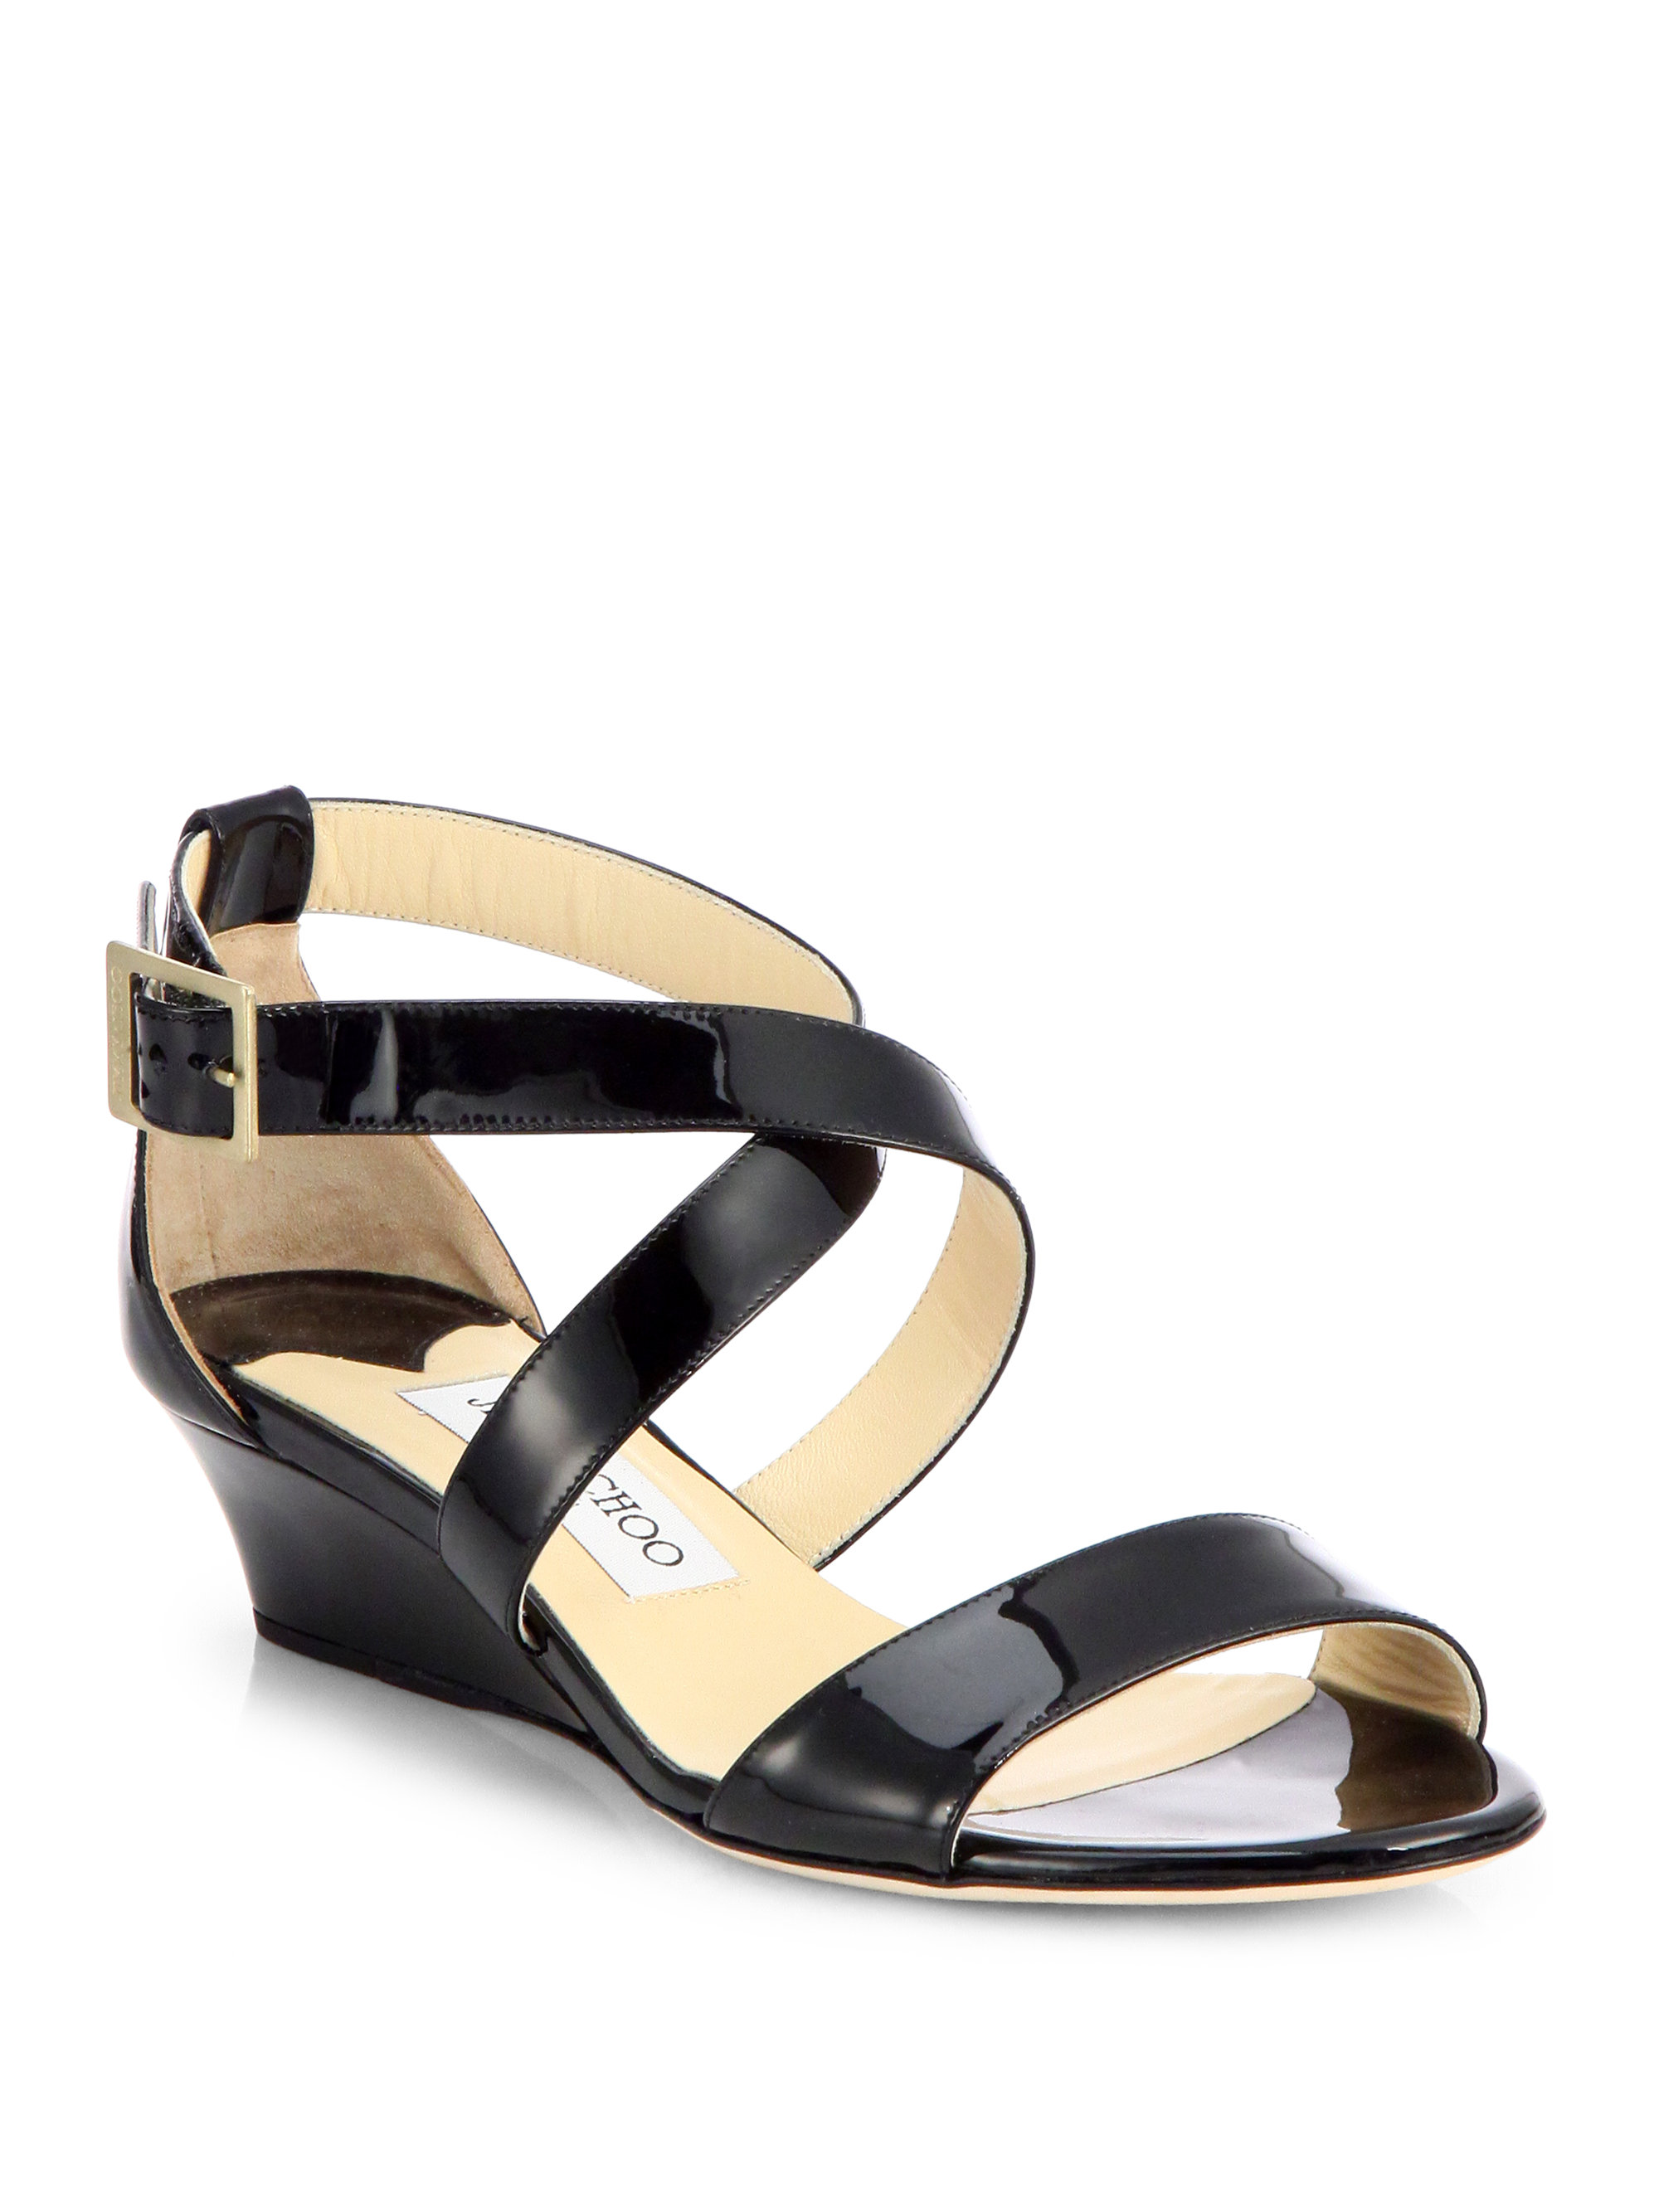 jimmy choo chiara patent leather wedge sandals in black lyst